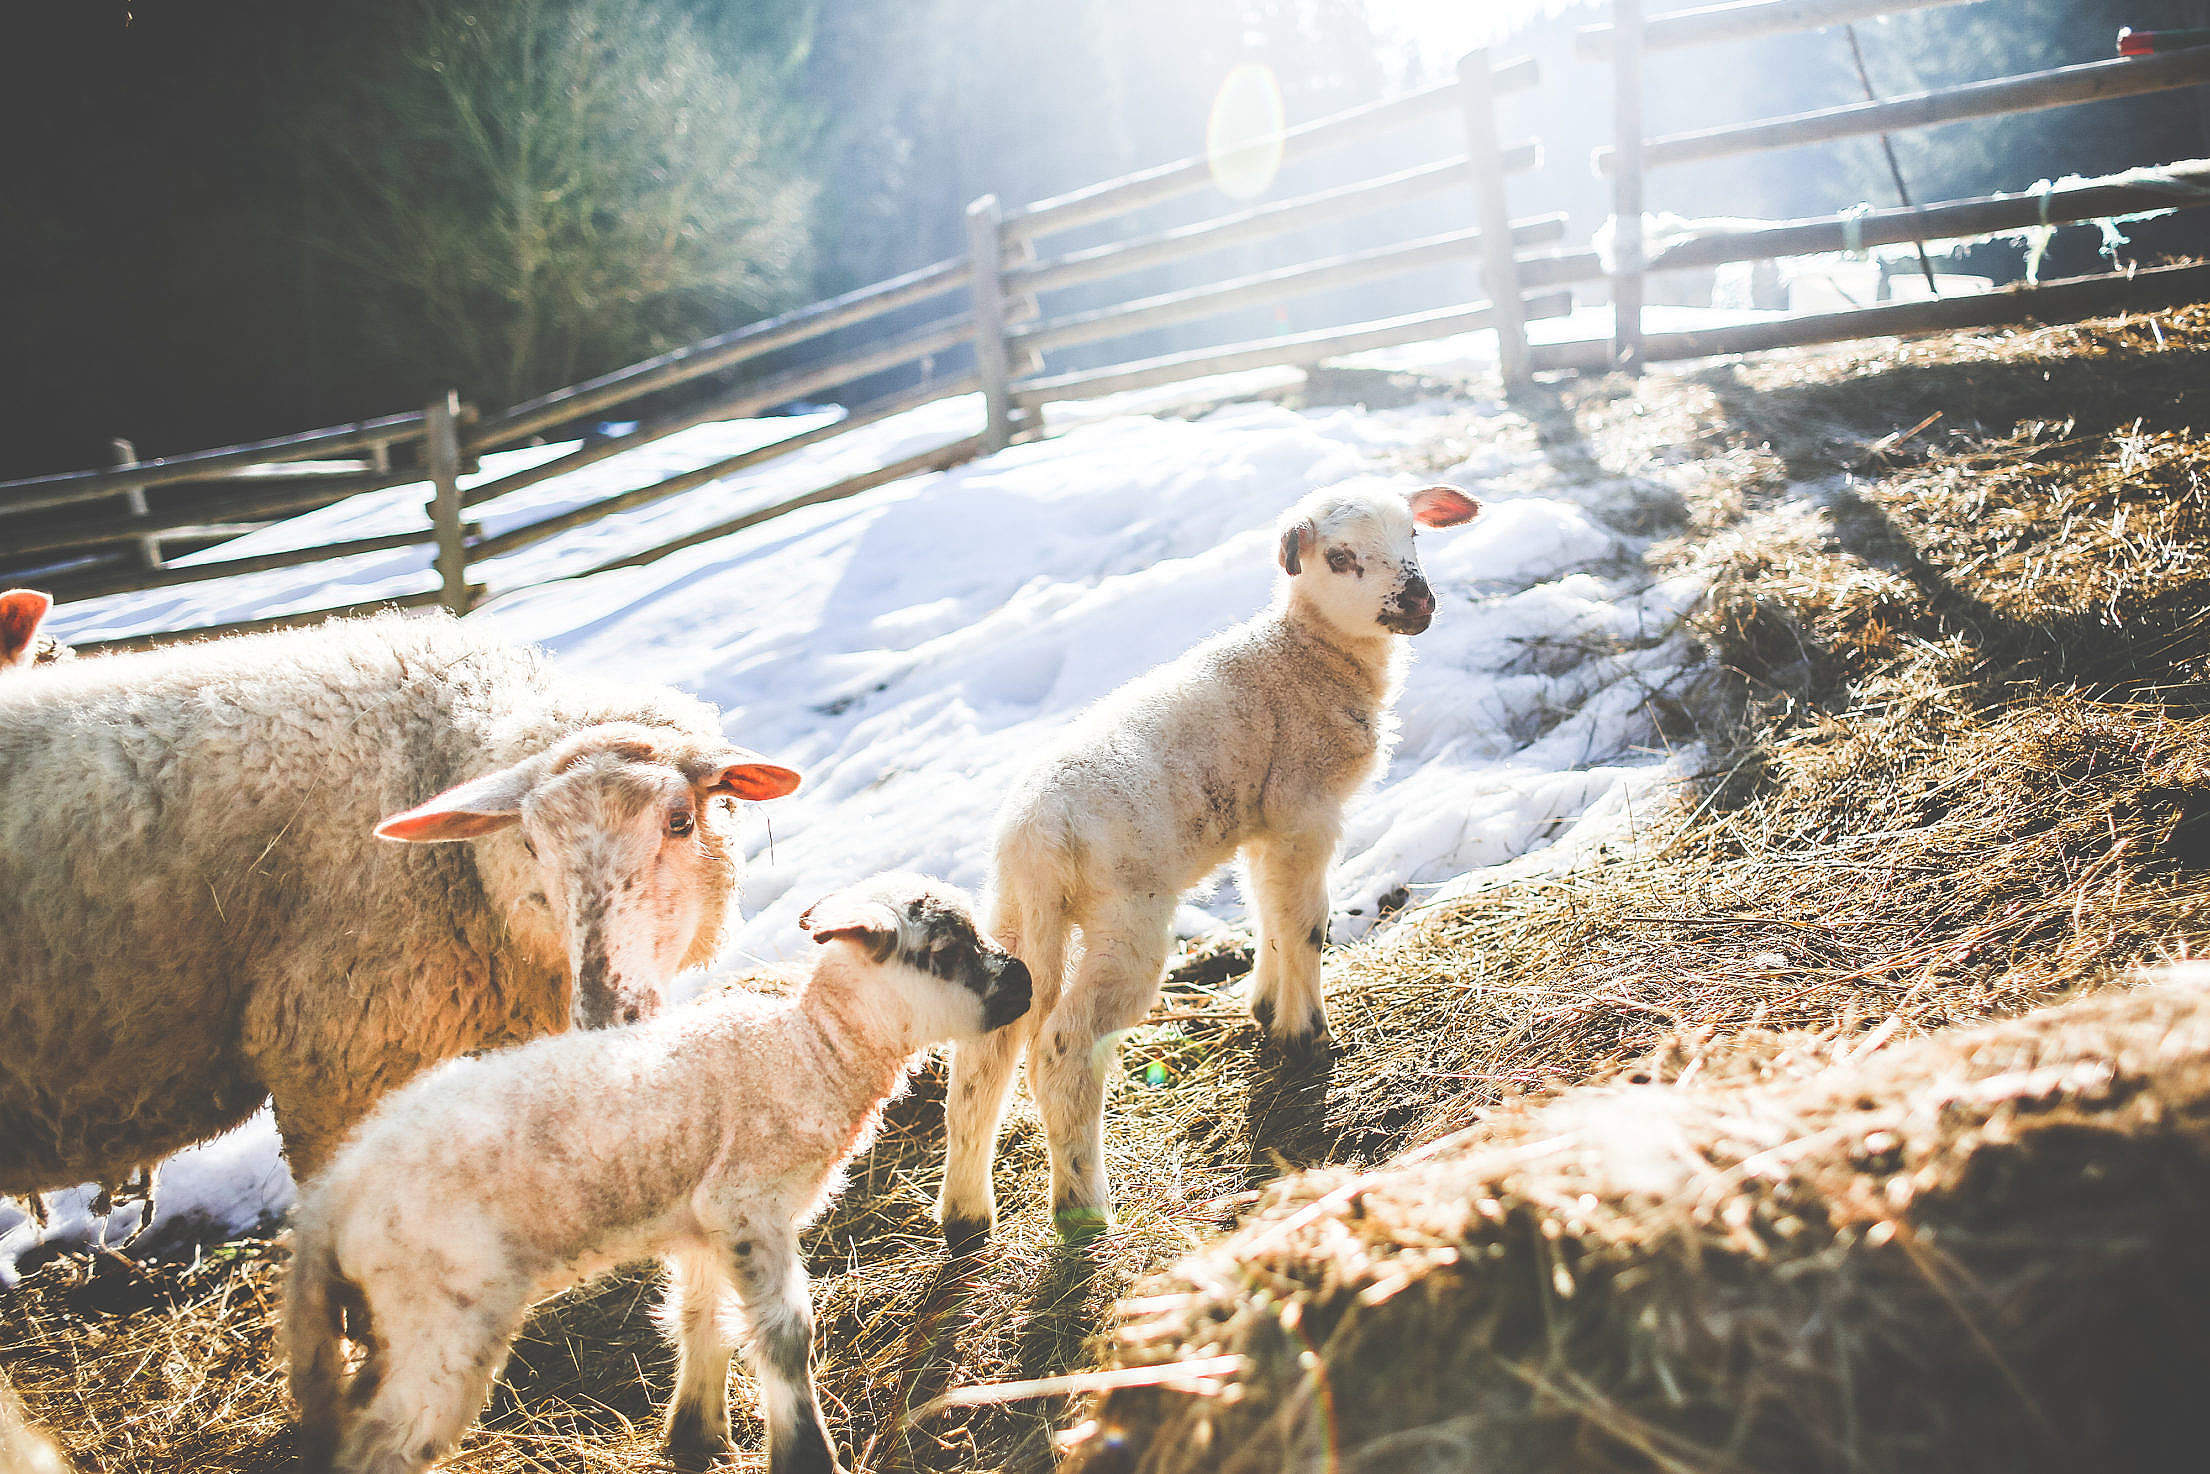 Sheep Family in Winter #2 Free Stock Photo